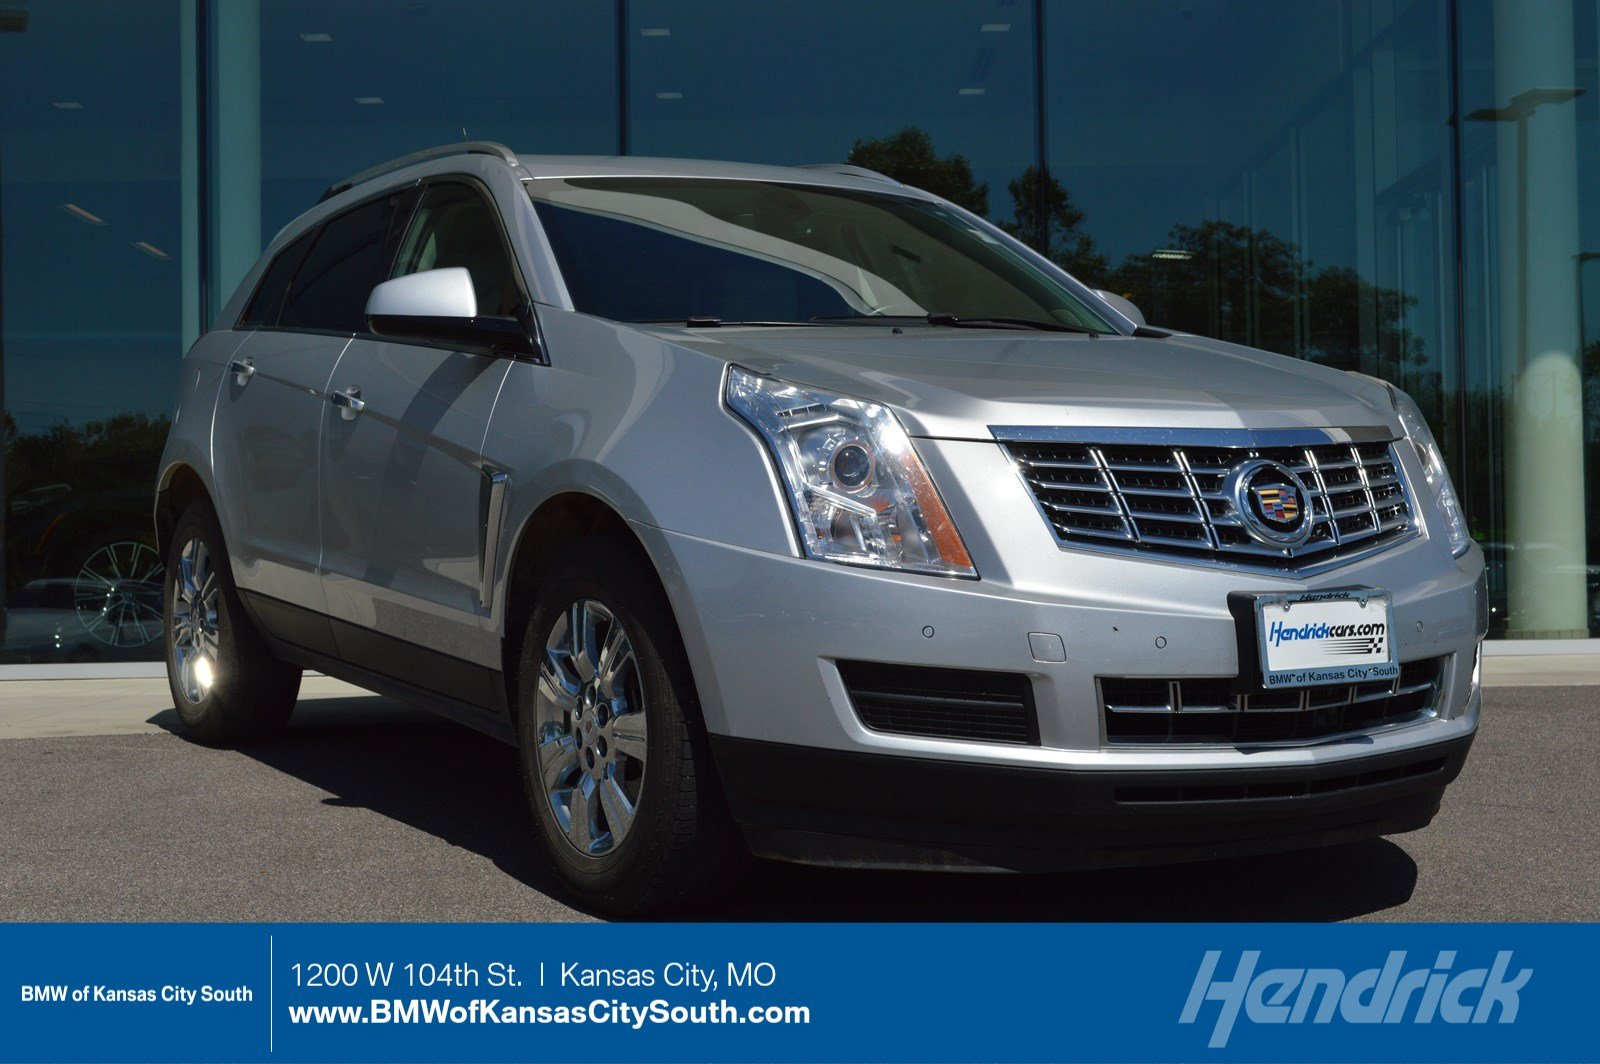 Used 2015 cadillac srx for sale in cary nc vin3gyfnee39fs520575